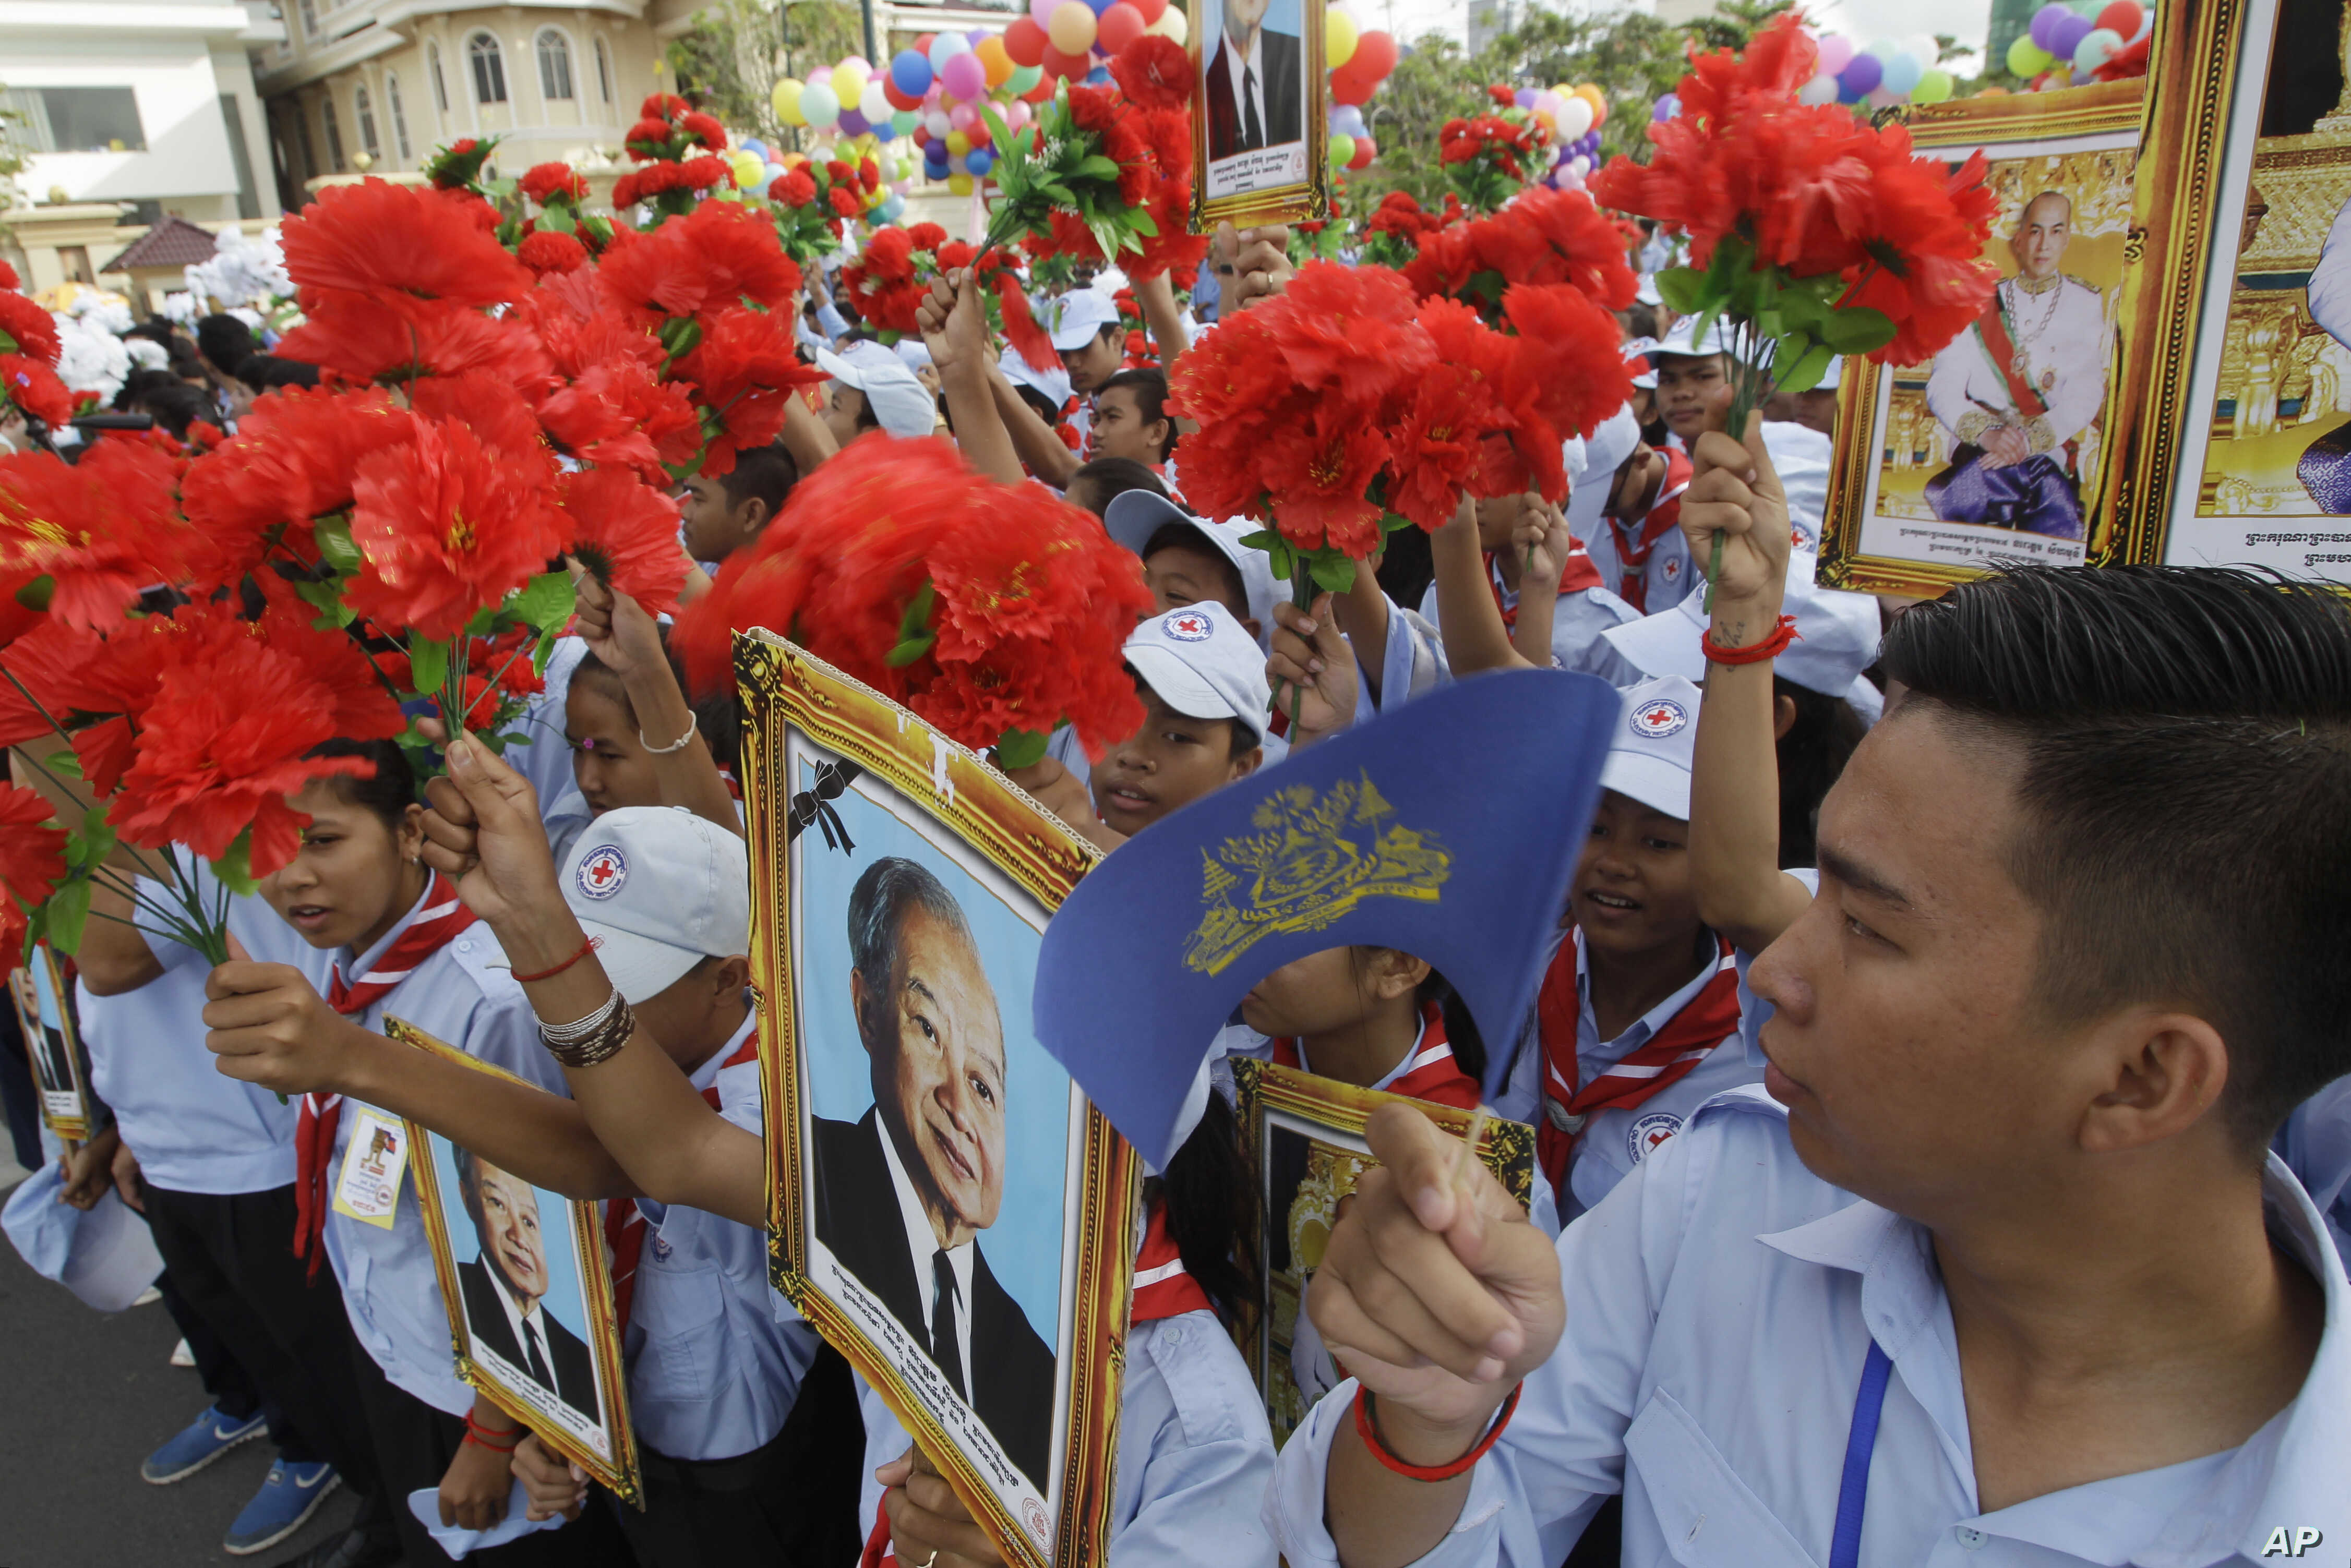 Cambodian students hold flowers and portraits of their king, Norodom Sihamoni, upper right, and former king, Norodom Sihanouk, center, during Independence Day celebrations in Phnom Penh, Cambodia, Nov. 9, 2017.